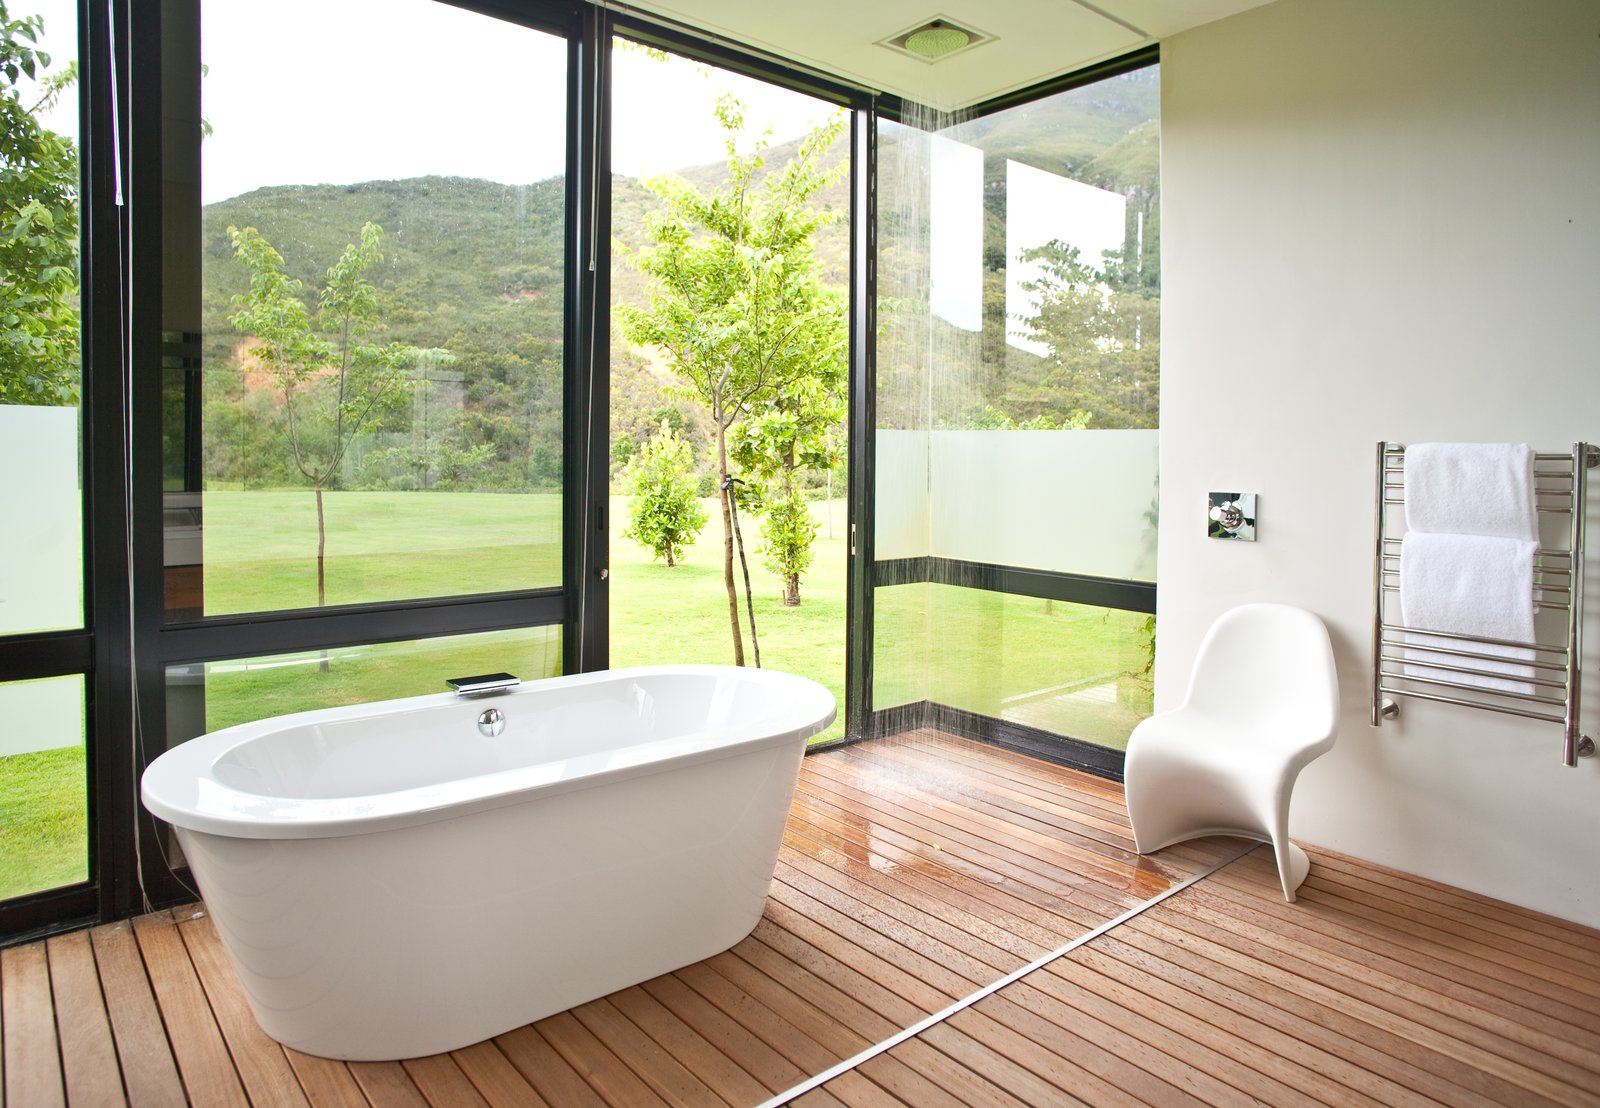 Bath Room, Open Shower, Medium Hardwood Floor, Soaking Tub, and Freestanding Tub The guest bathrooms are outfitted with showers and tubs that feel close to nature.  Photo 6 of 9 in This South African Villa Lets You Bask in Divine Views